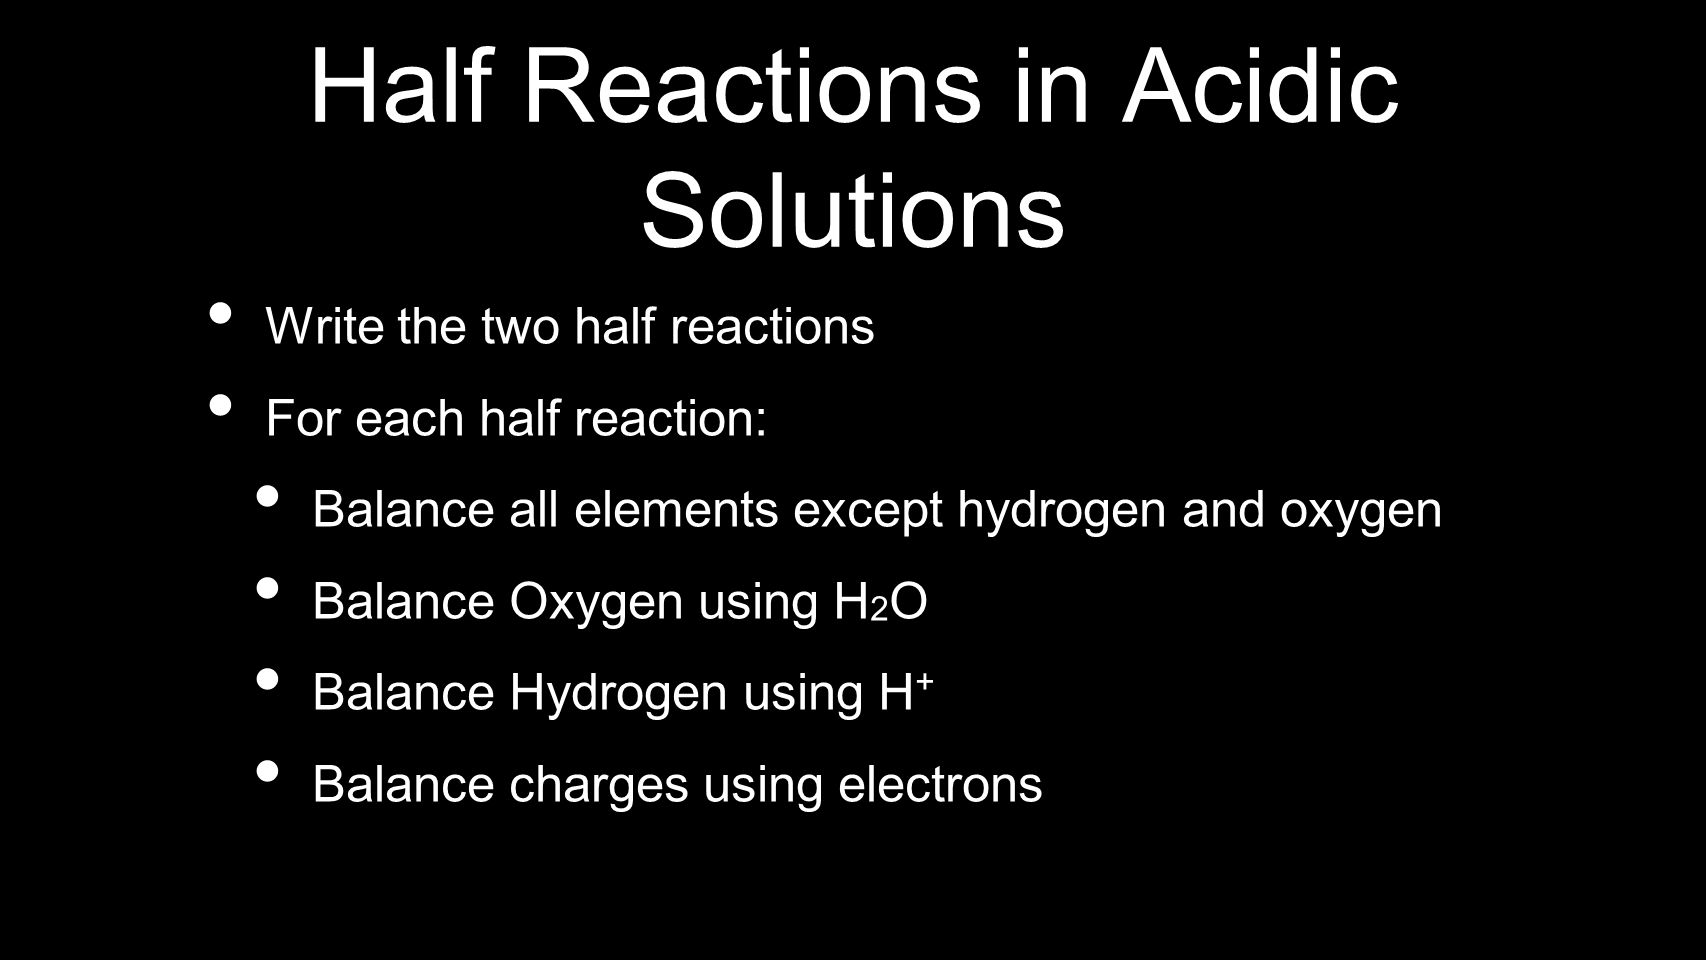 Half Reactions in Acidic Solutions Write the two half reactions For each half reaction: Balance all elements except hydrogen and oxygen Balance Oxygen